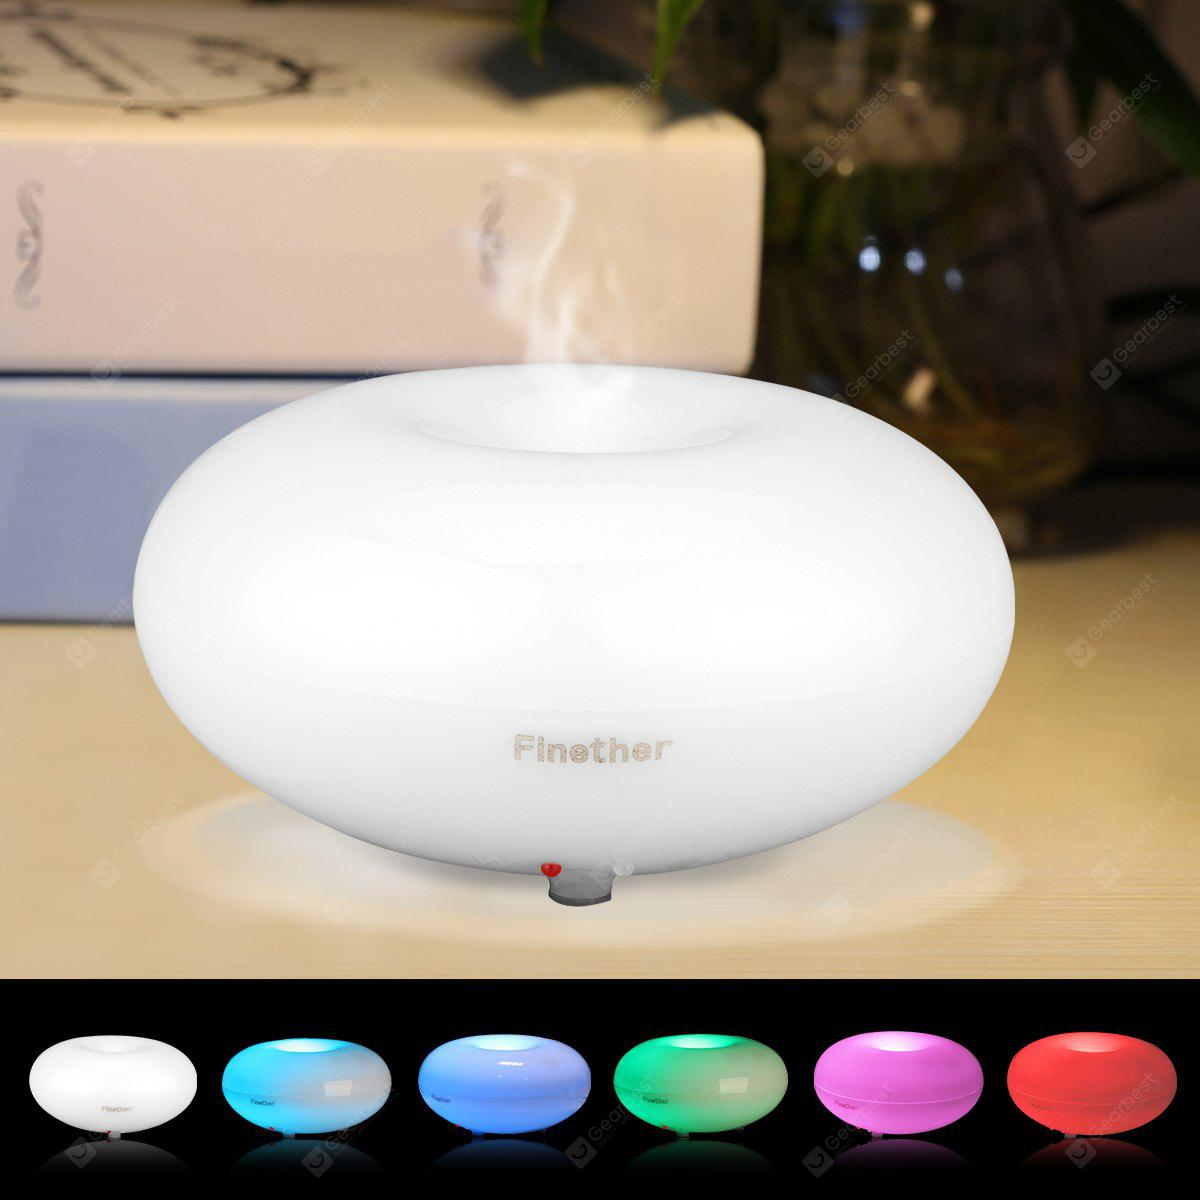 Finether Essential Oil Aroma Diffuser Ultrasonic Humidifier Air Mist Aromatherapy Purifier Clear GX-03K UK